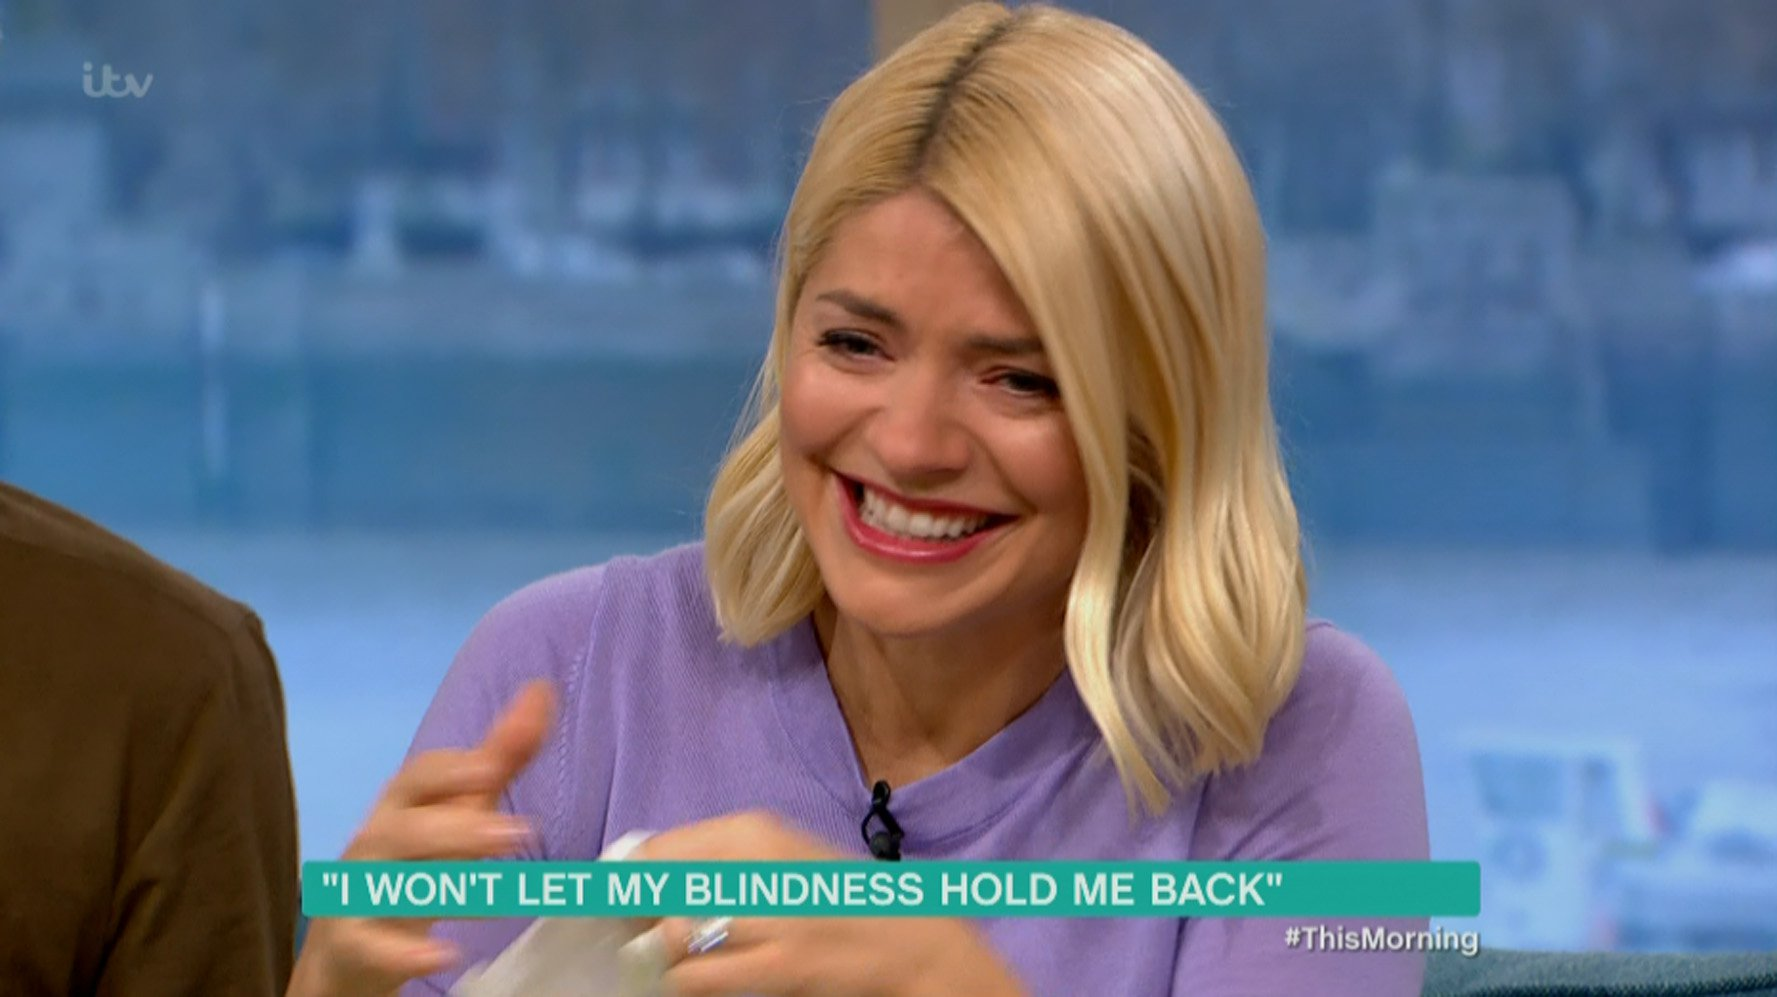 ****Ruckas Videograbs**** (01322) 861777 *IMPORTANT* Please credit ITV for this picture. 12/02/19 This Morning - ITV1 Grabs from this morning's show which saw presenter Holly Willoughby become emotional after watching a 10-year-old boys reaction to being told he will be a mascot for an England international football match. Declan Bitmead had been on the show alongside his mother Ashleigh to talk about his rare condition Toxic Epidermal Necrolysis which has left him blind following an allergic reaction to antibiotics and was delighted to learn that the show had organised the surprise for him. But it was Holly, sat alongside Phillip Schofield, who started to cry. Office (UK) : 01322 861777 Mobile (UK) : 07742 164 106 **IMPORTANT - PLEASE READ** The video grabs supplied by Ruckas Pictures always remain the copyright of the programme makers, we provide a service to purely capture and supply the images to the client, securing the copyright of the images will always remain the responsibility of the publisher at all times. Standard terms, conditions & minimum fees apply to our videograbs unless varied by agreement prior to publication.